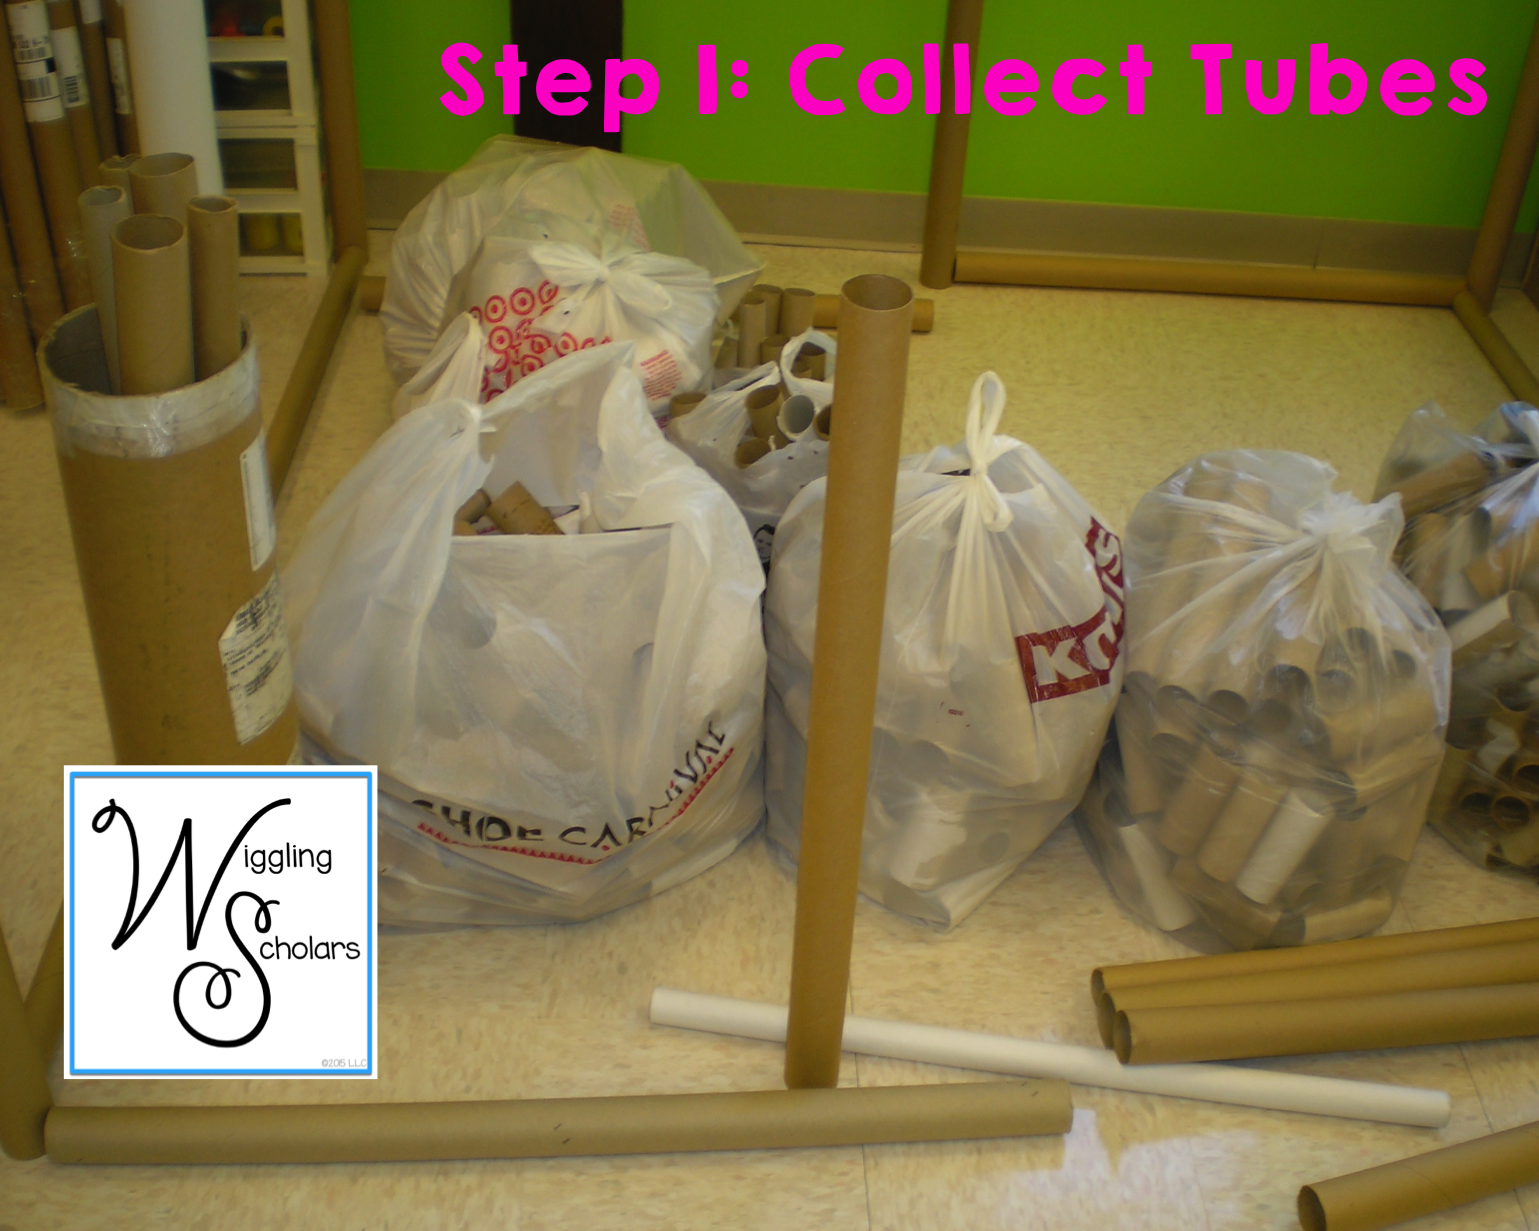 STEM Step 1: Collect Paper Roll Tubes